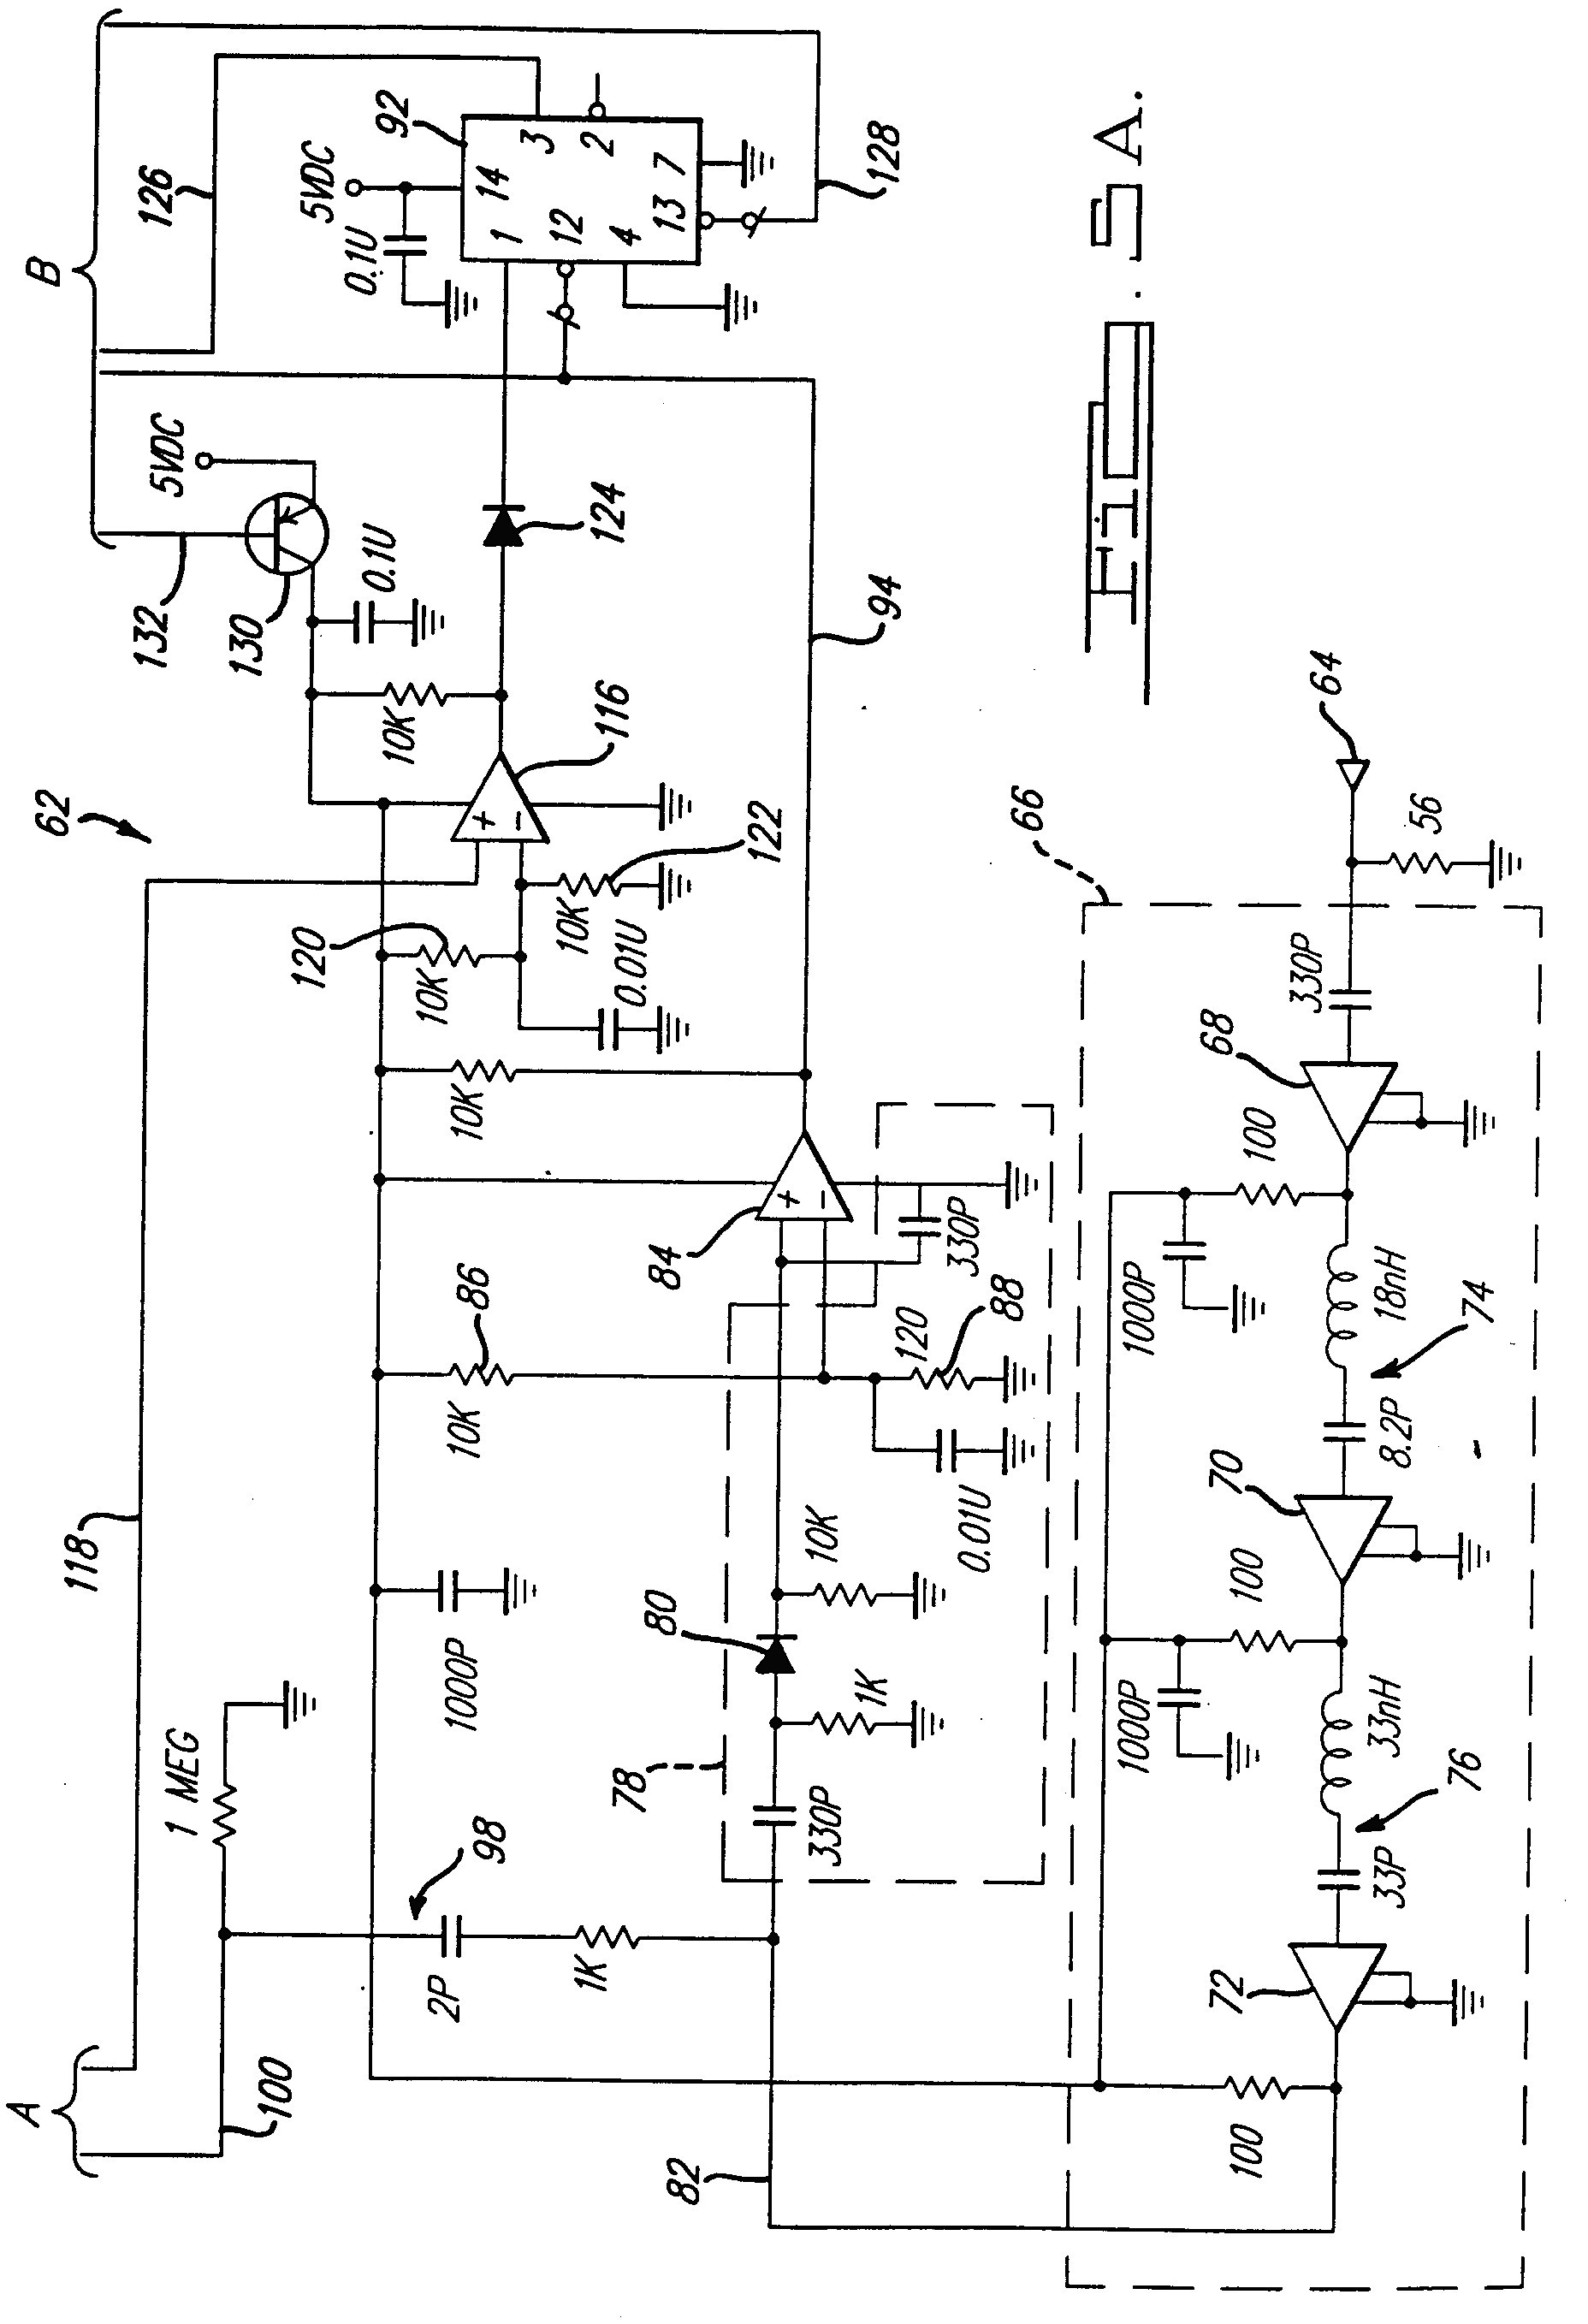 Liftmaster Wiring Diagram Gallery Wiring Diagram Sample